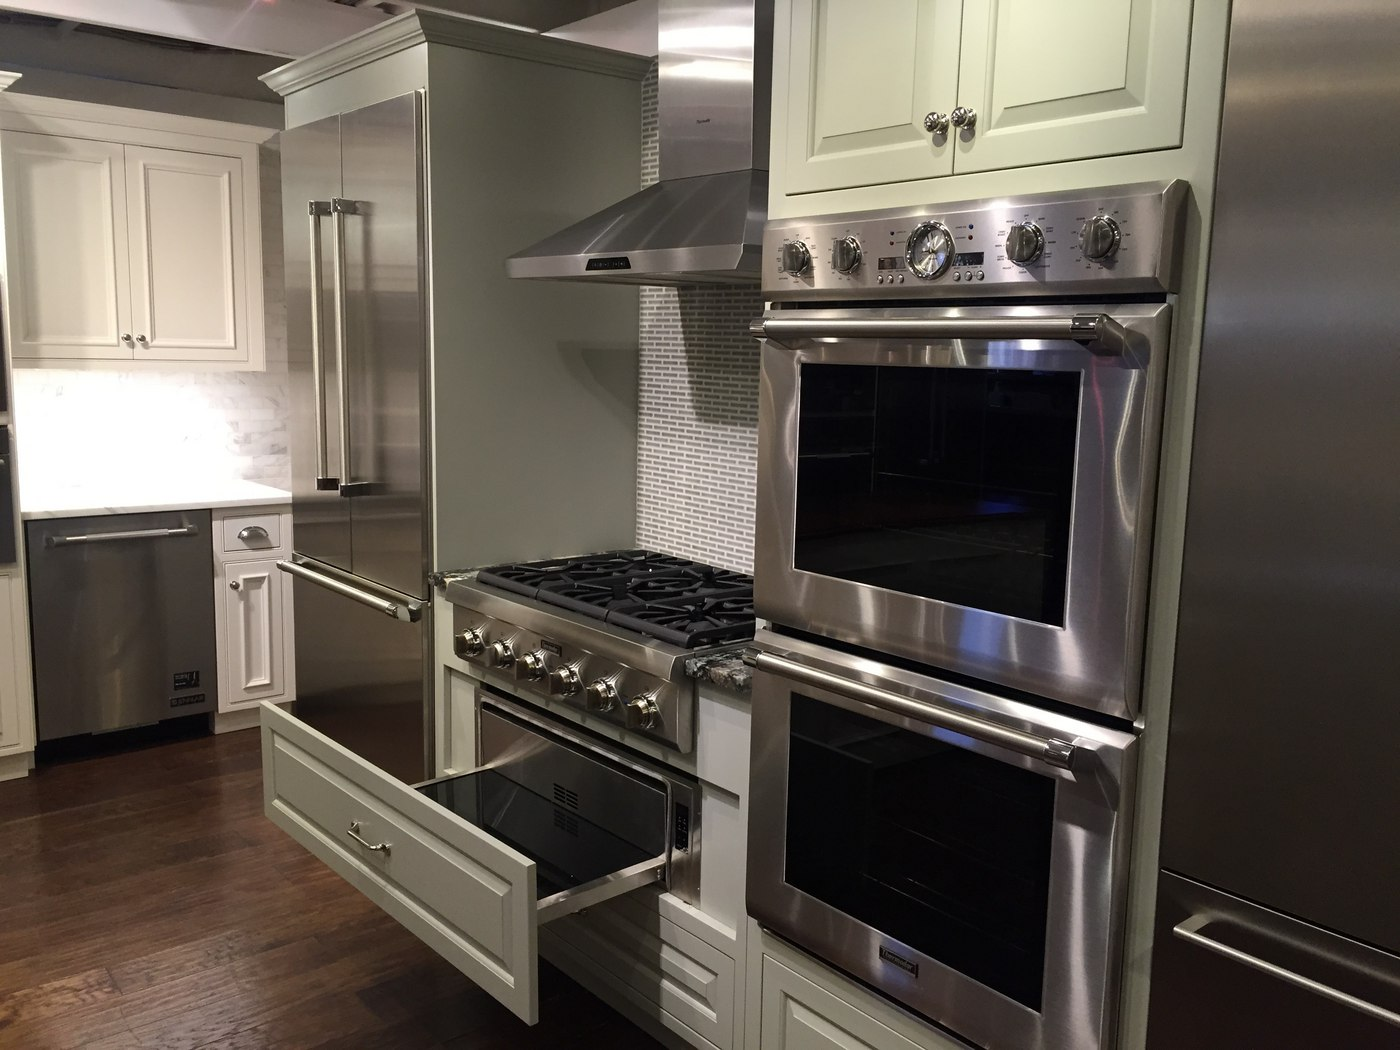 Wall oven under cooktop - Can You Place A Wall Oven Under A Rangetop With Kitchen Wall Ovens